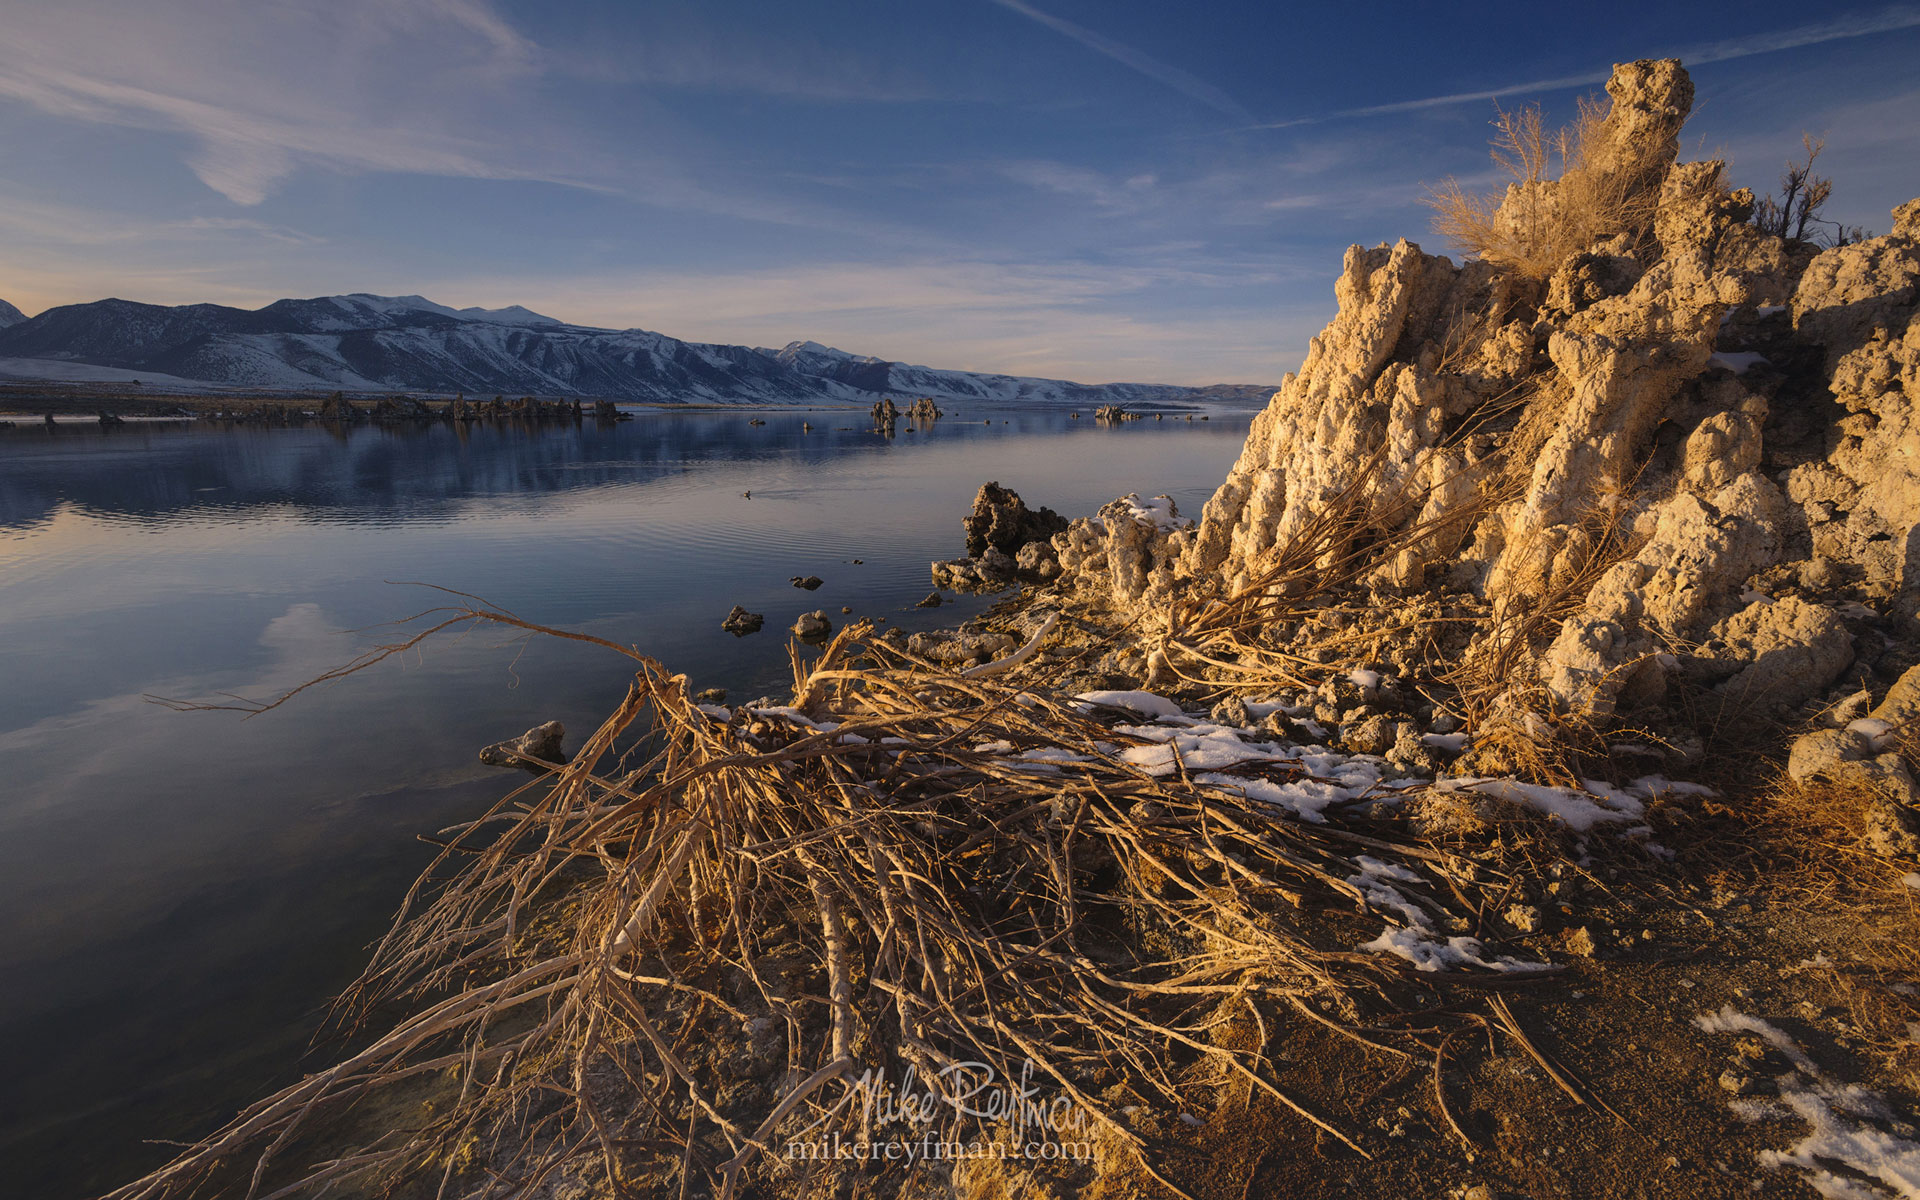 Mono Lake, Tufa State Natural Reserve, Eastern Sierra, California, USA ML1-MRN3X0639 - Mono Lake Tufa State Natural Reserve, Eastern Sierra, California - Mike Reyfman Photography